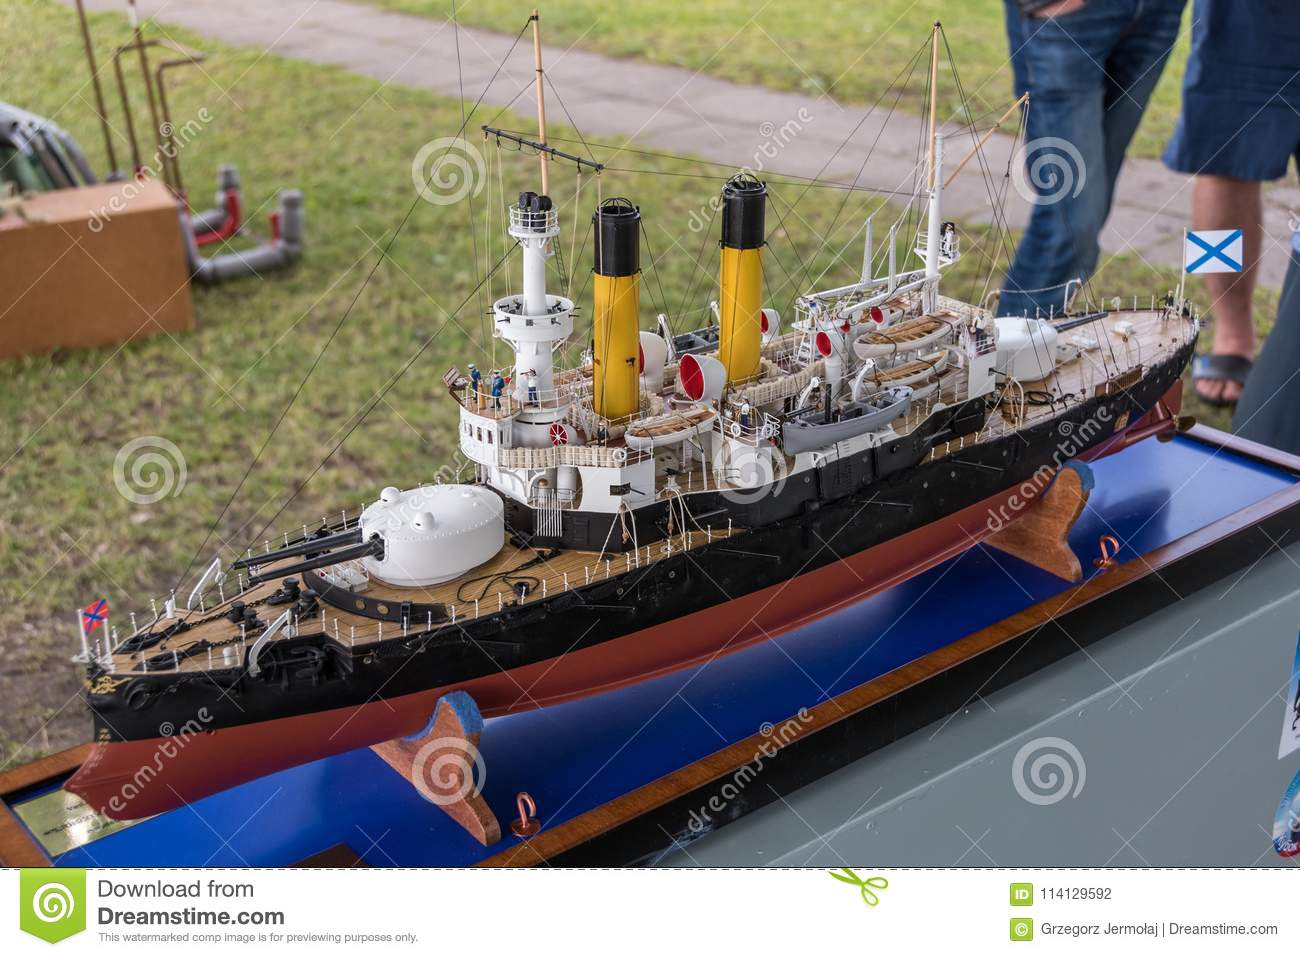 Remote-control Scale Warship At Competitions  Editorial Photography